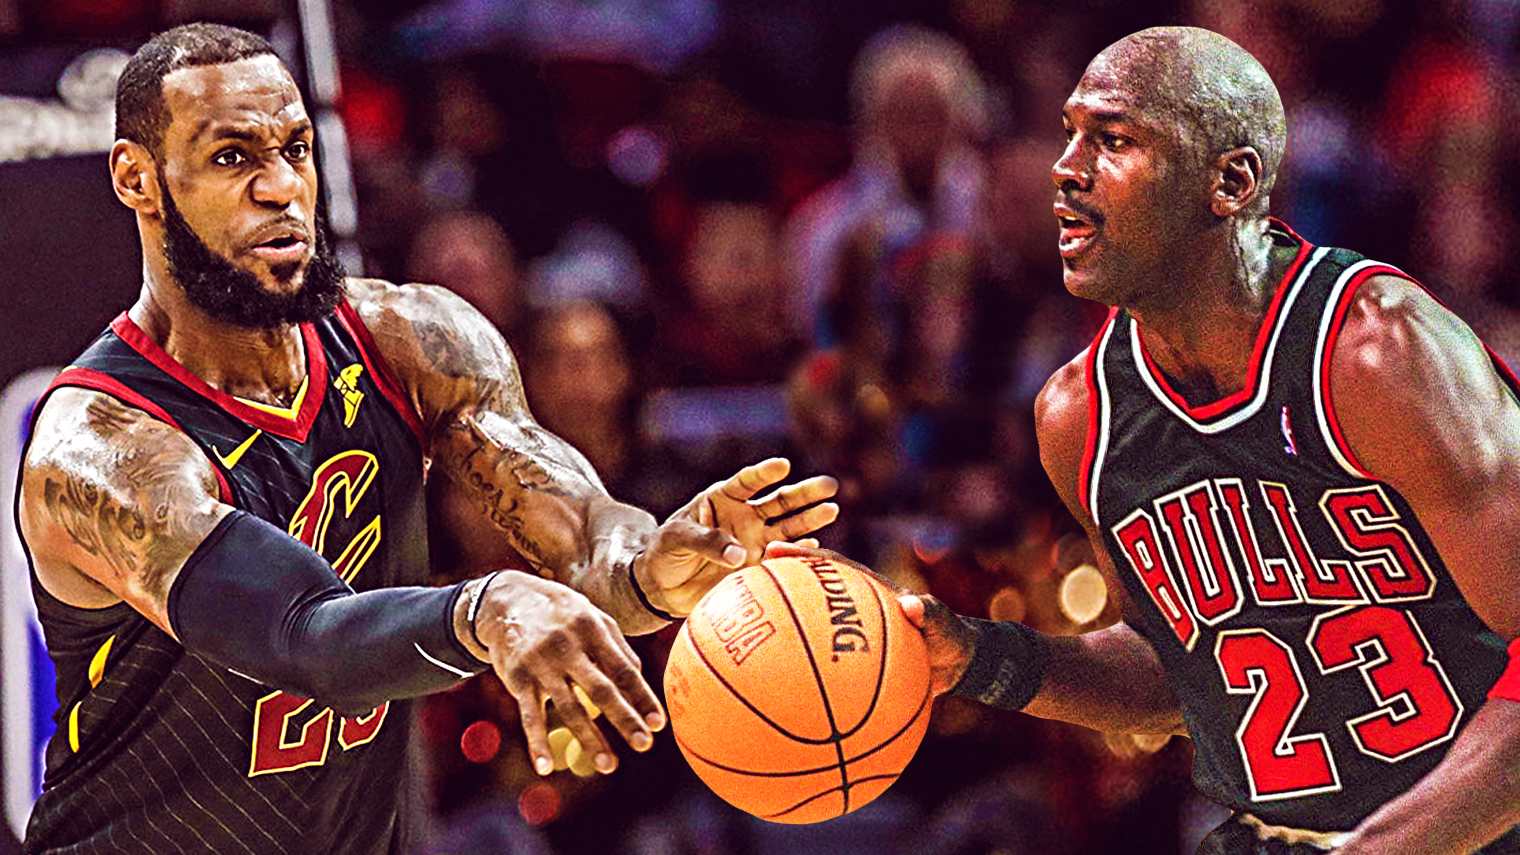 MICHAEL JORDAN WON RINGS WITH ONE TEAM, LEBRON JAMES DIDN'T & HE WON'T MATCH MJ'S LEGACY SAYS A FORMER NBA PLAYER